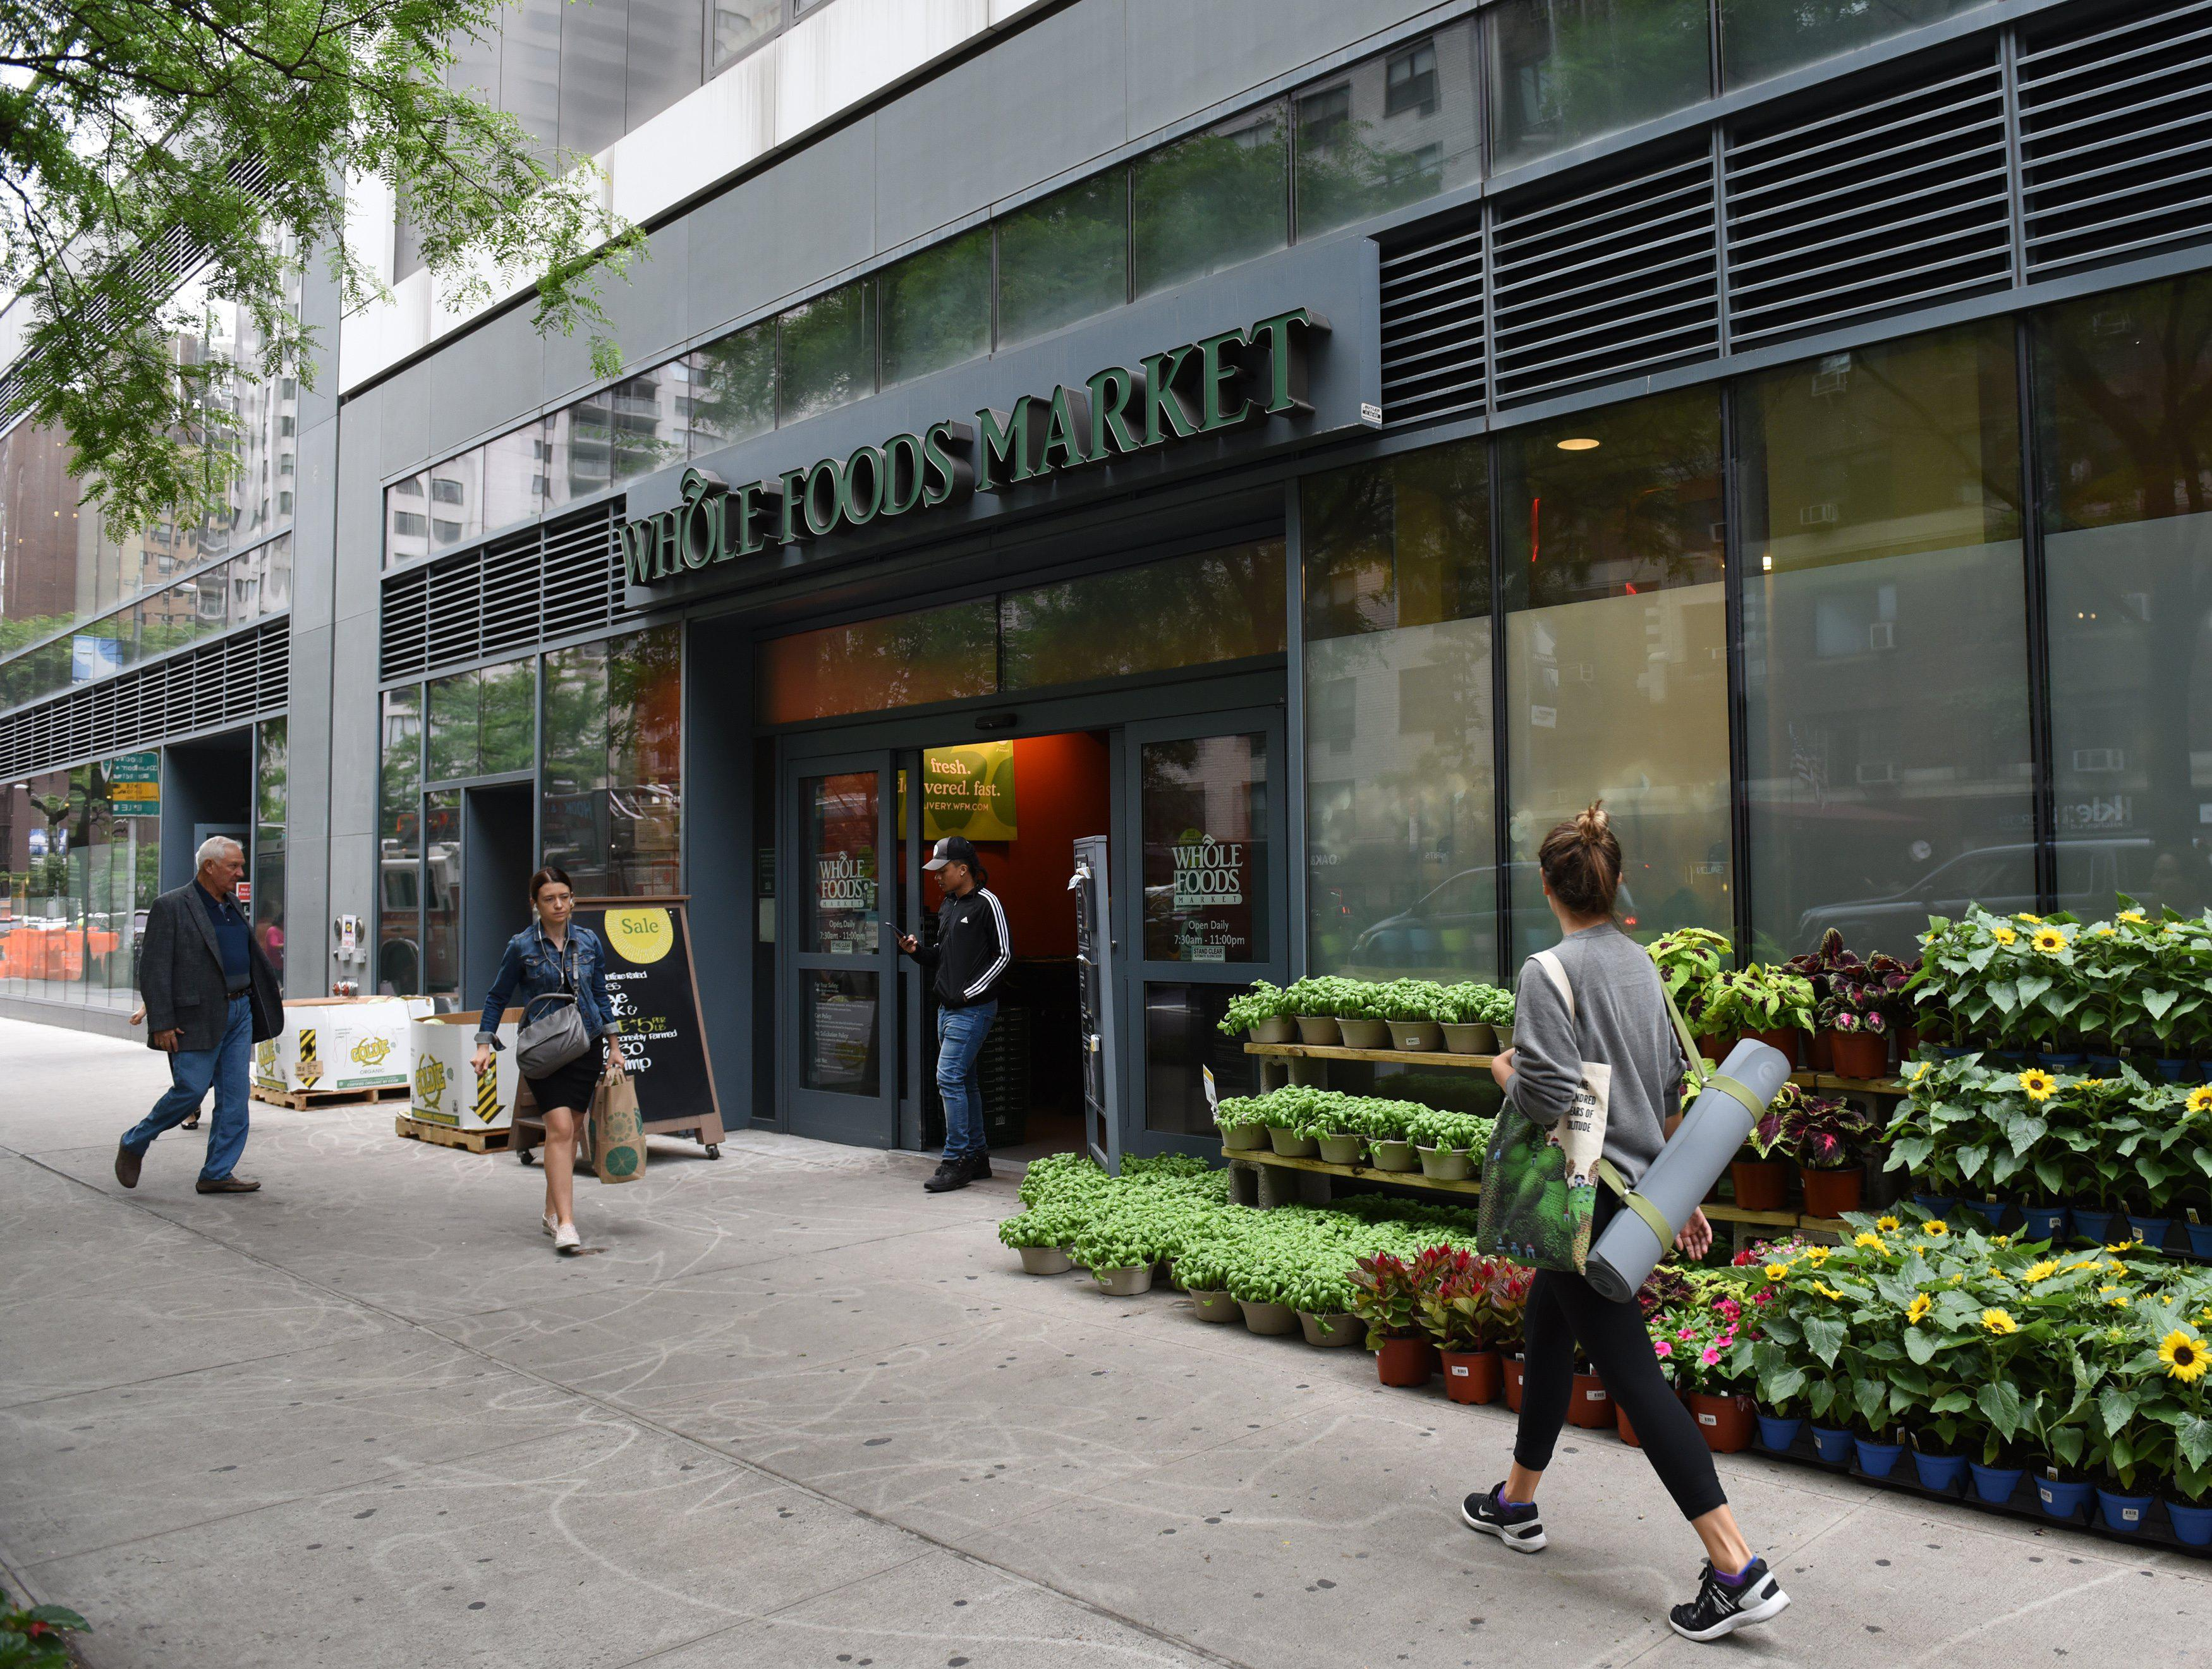 The Whole Foods Market in Midtown New York is seen on June 16, 2017.          Amazon is once again shaking up the retail sector, with the announcement Friday it will acquire upscale US grocer Whole Foods Market, known for its pricey organic options,  in a deal that underscores the online giant's growing influence in the economy. / AFP PHOTO / TIMOTHY A. CLARY        (Photo credit should read TIMOTHY A. CLARY/AFP/Getty Images)